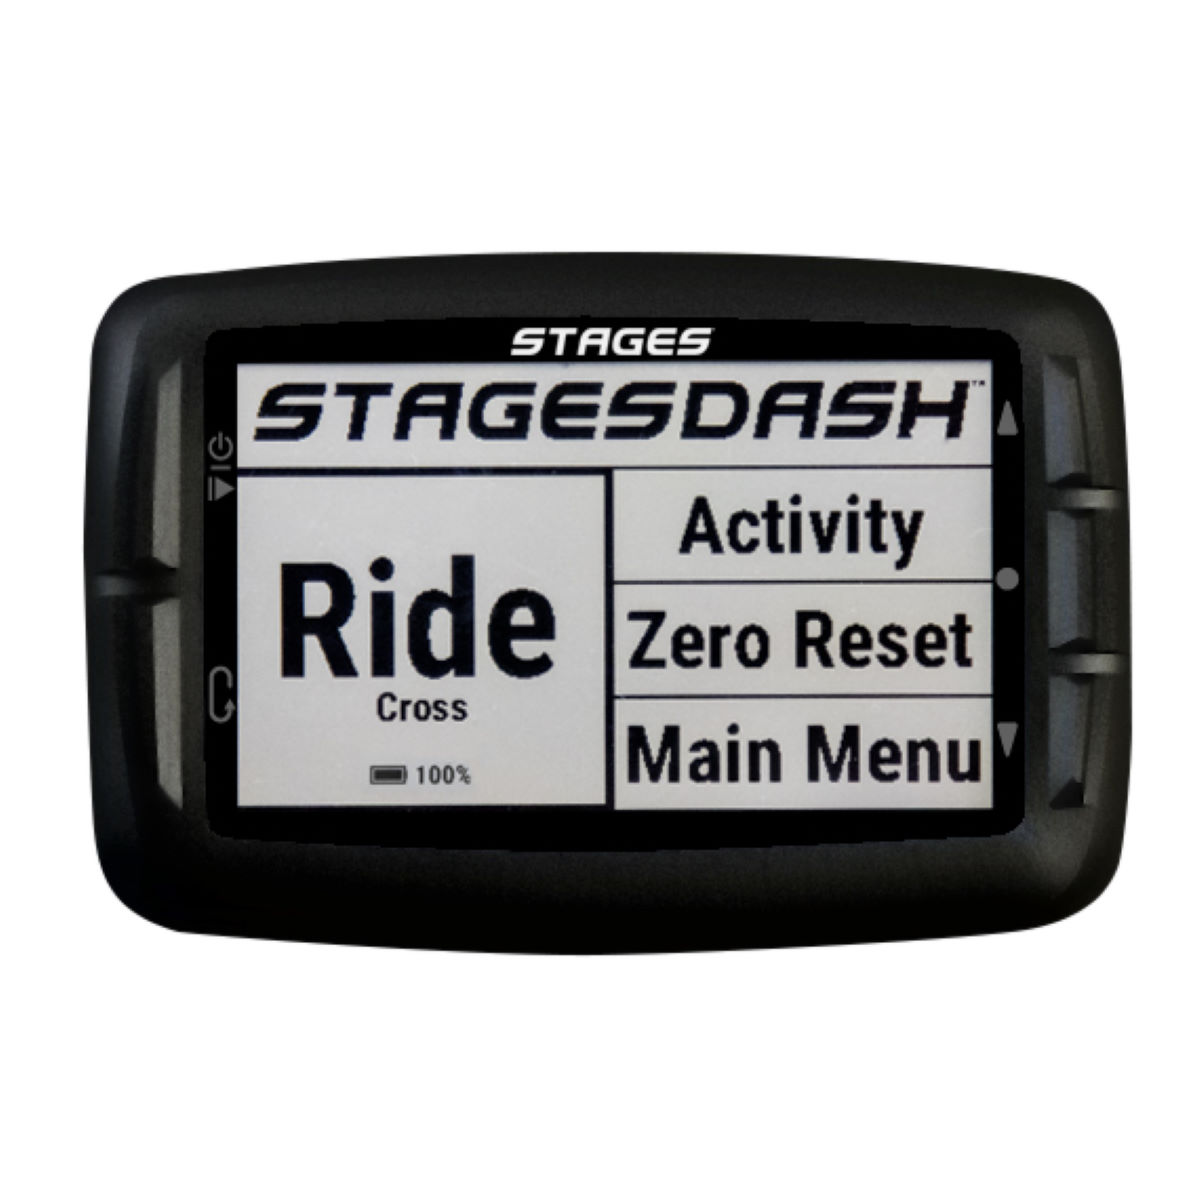 Stages Cycling Dash Cykeldator - Datorer